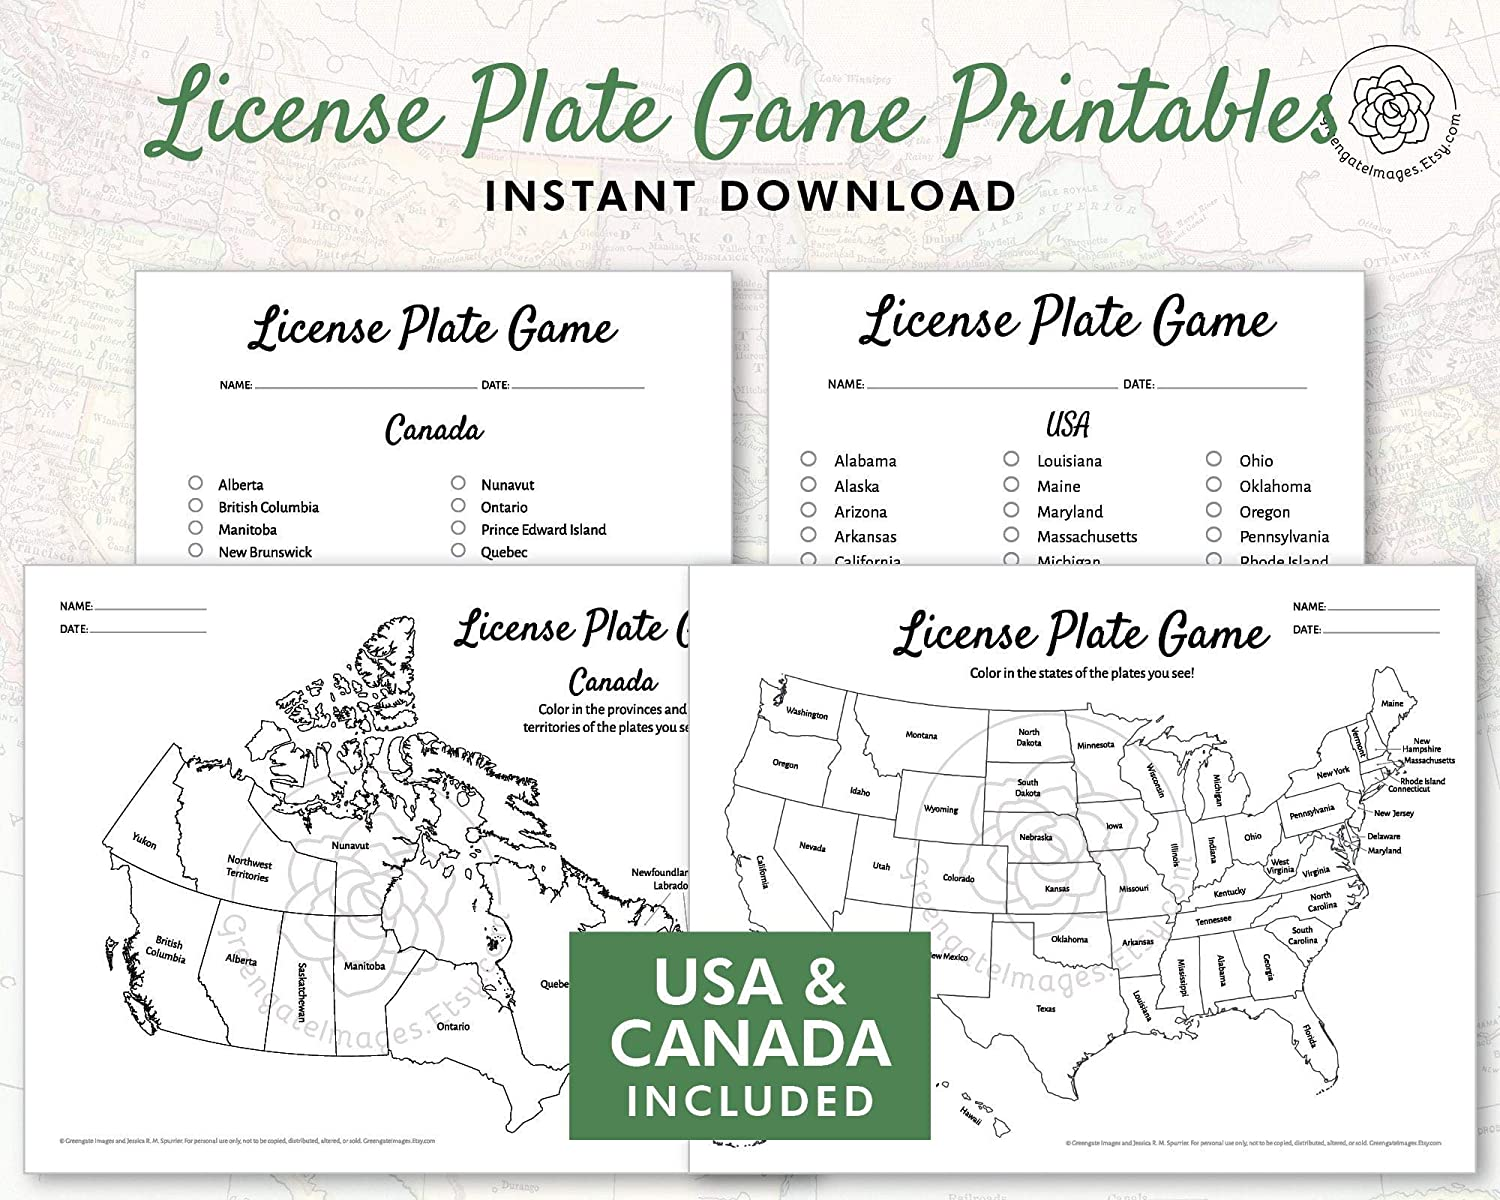 Amazon.com: License Plate Game Printable - US and Canada ...